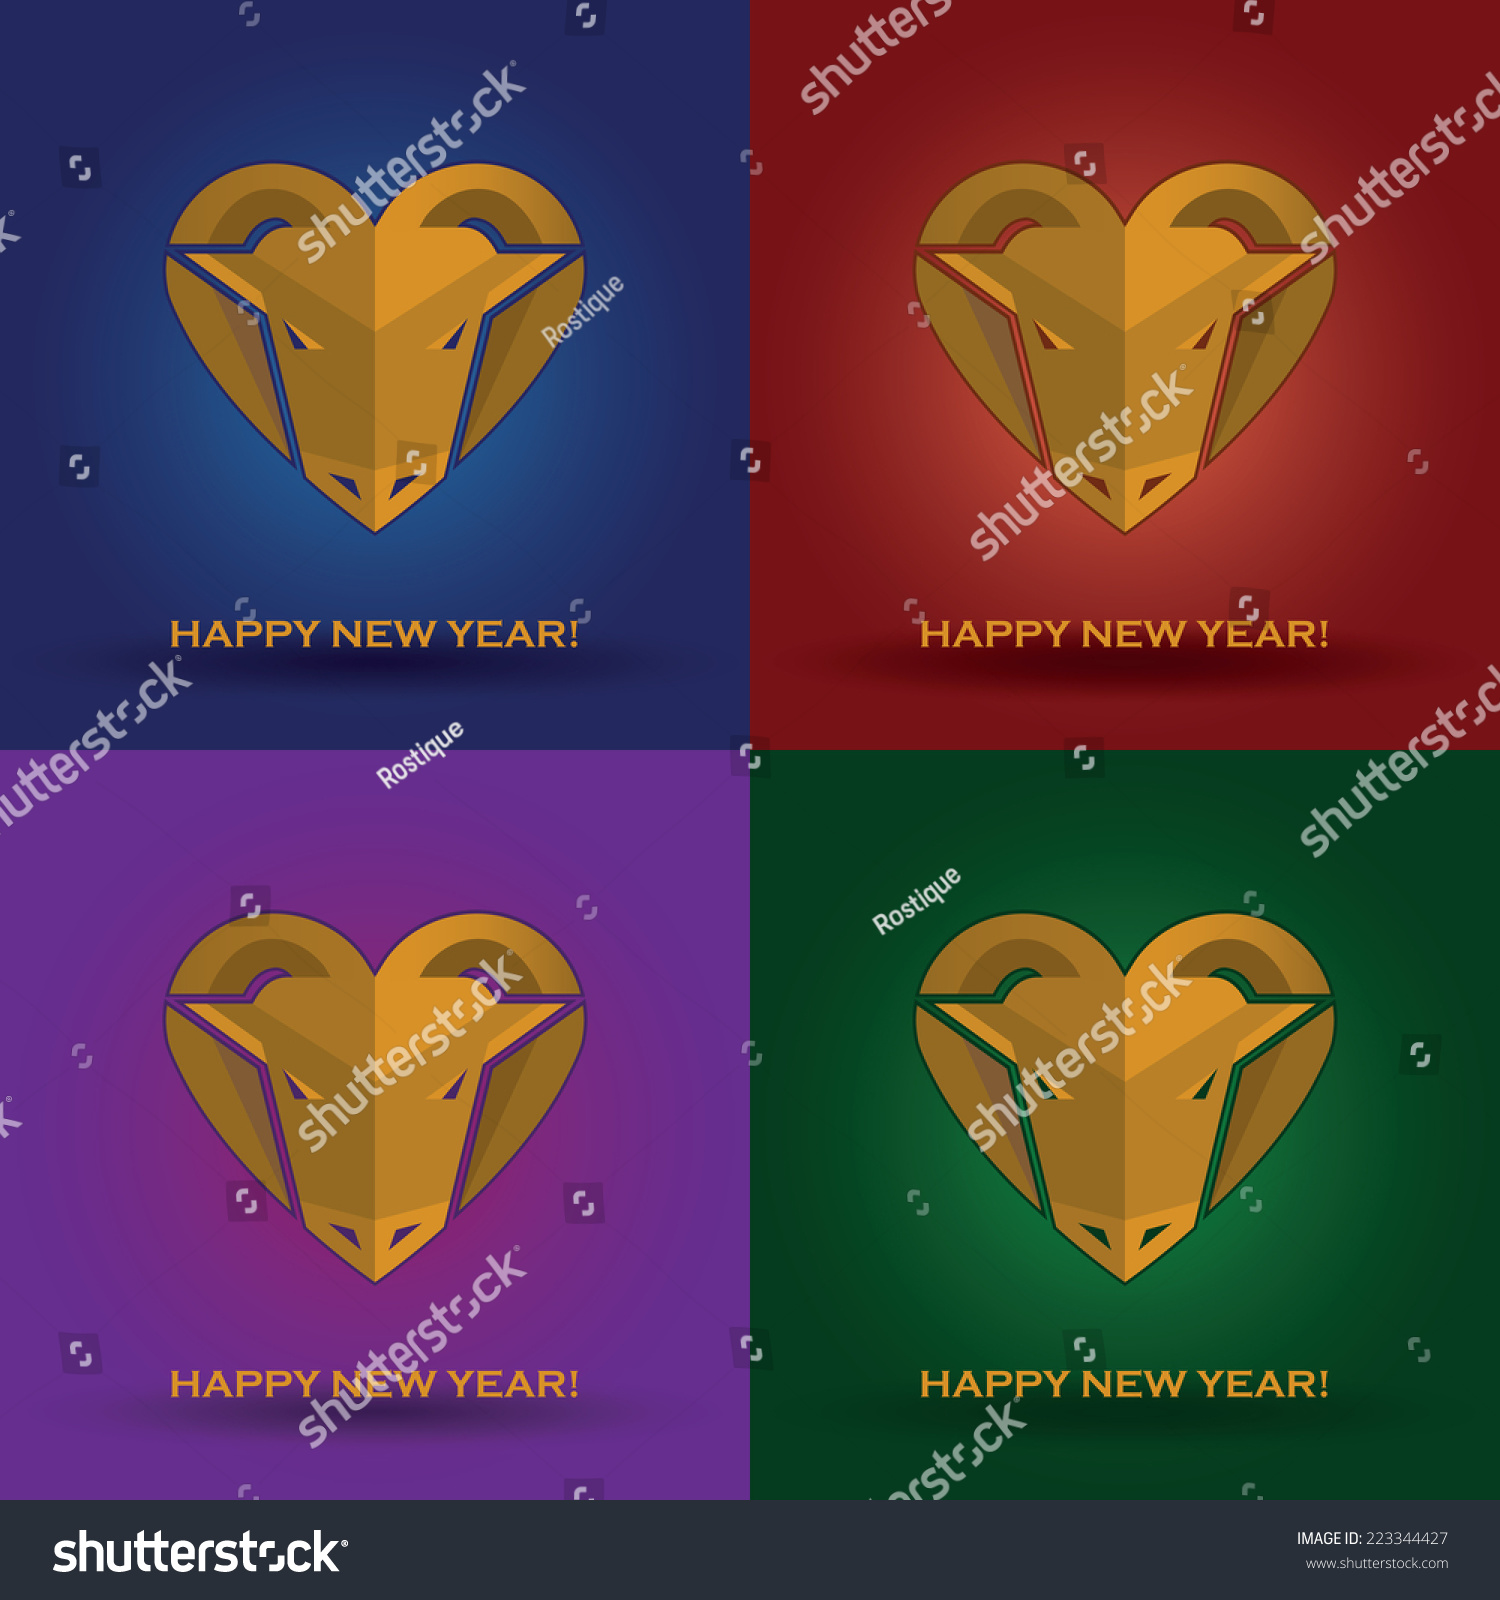 set of new year cards with romantic wooden goats heads with horns like heart on the